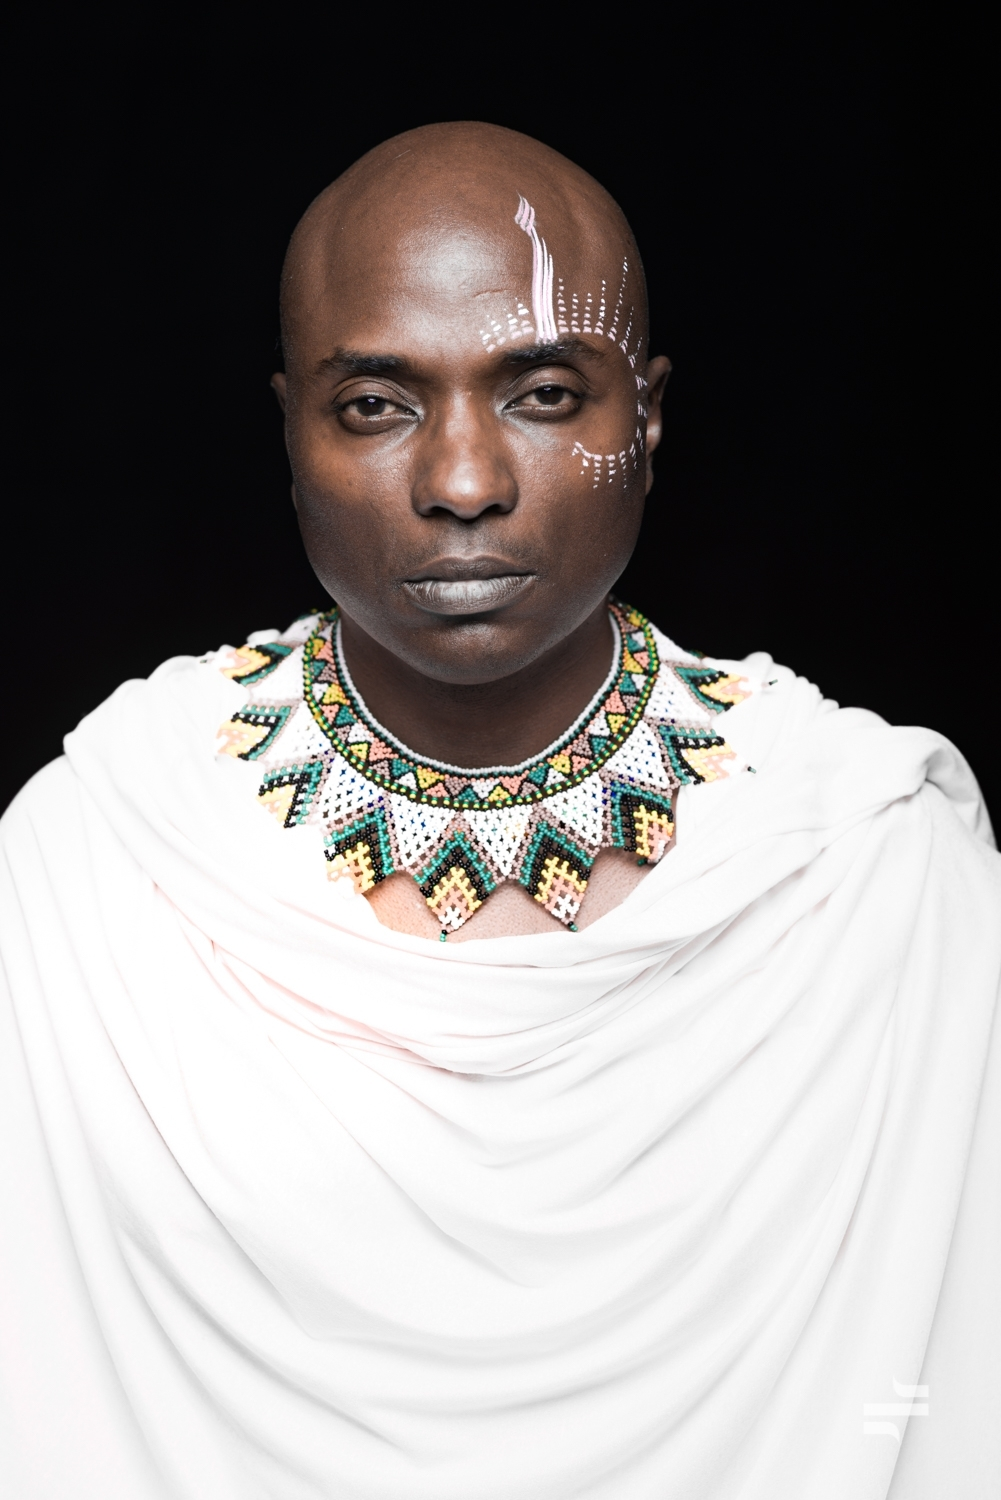 Shaman Durek photographed by Amir Magal